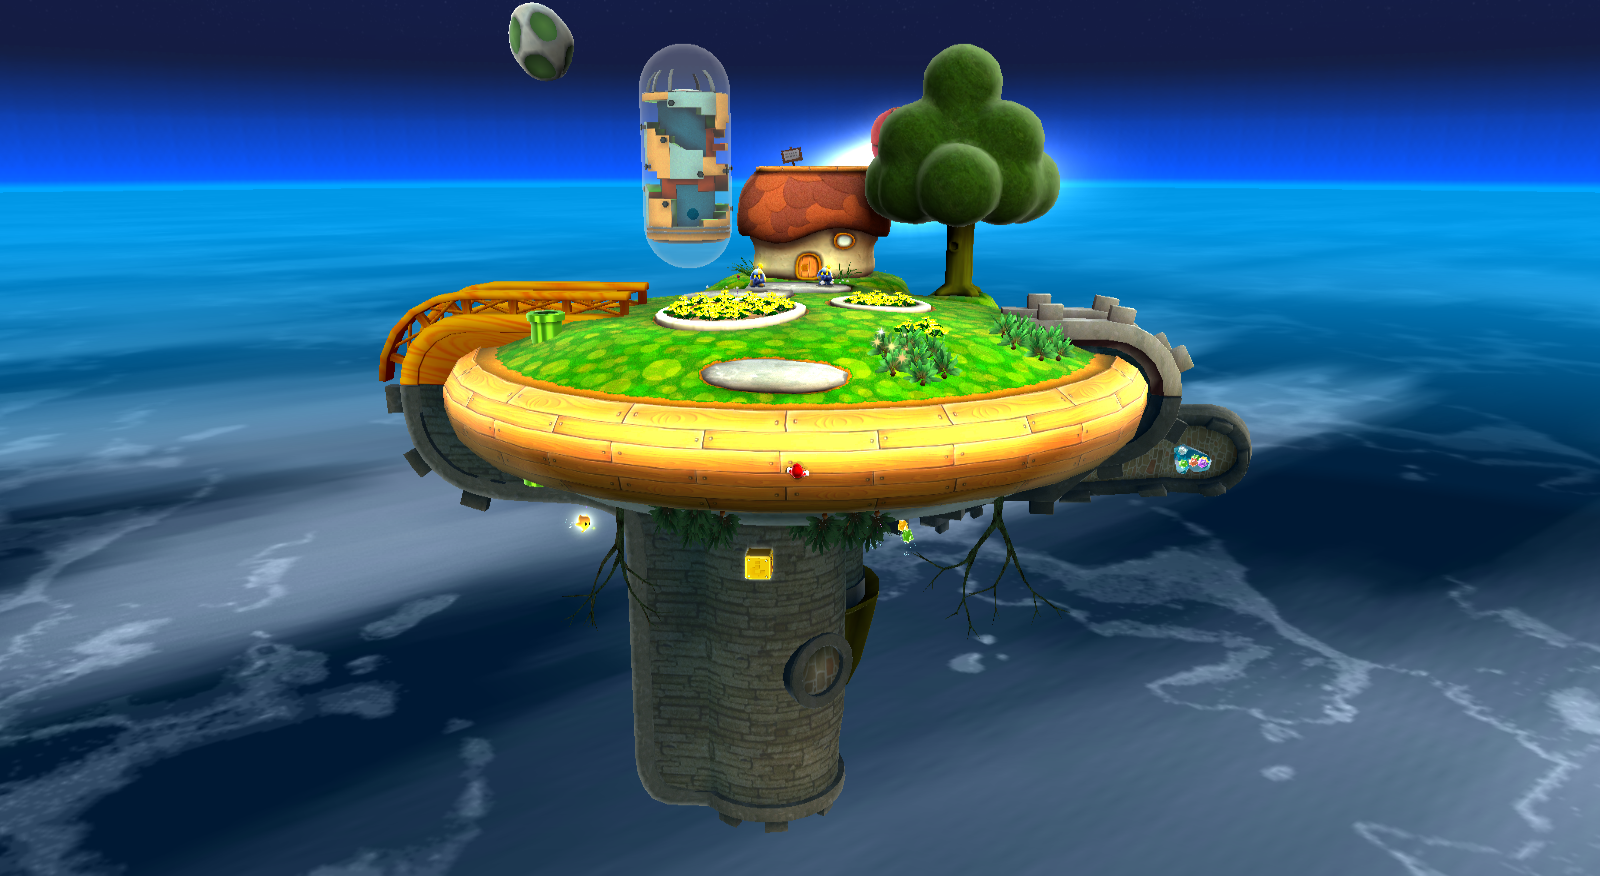 https://www.mariowiki.it/images/a/a0/GoodEggGalaxyMania.png